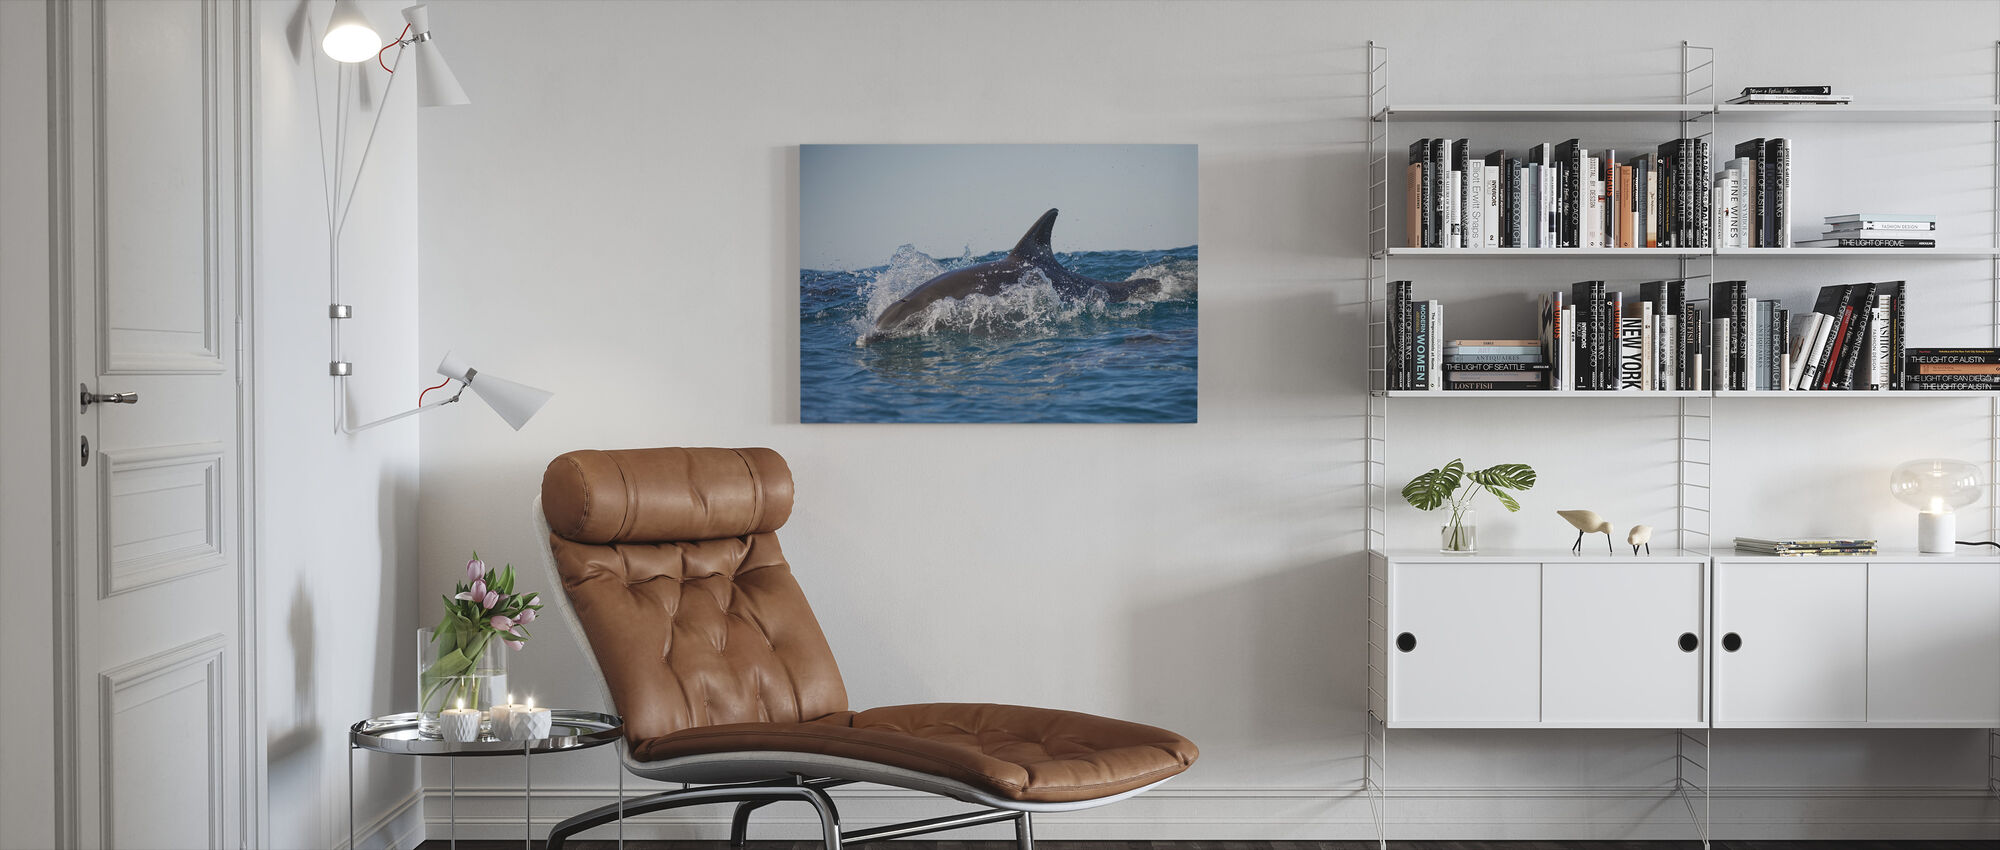 Bottlenose Dolphin - Canvas print - Living Room